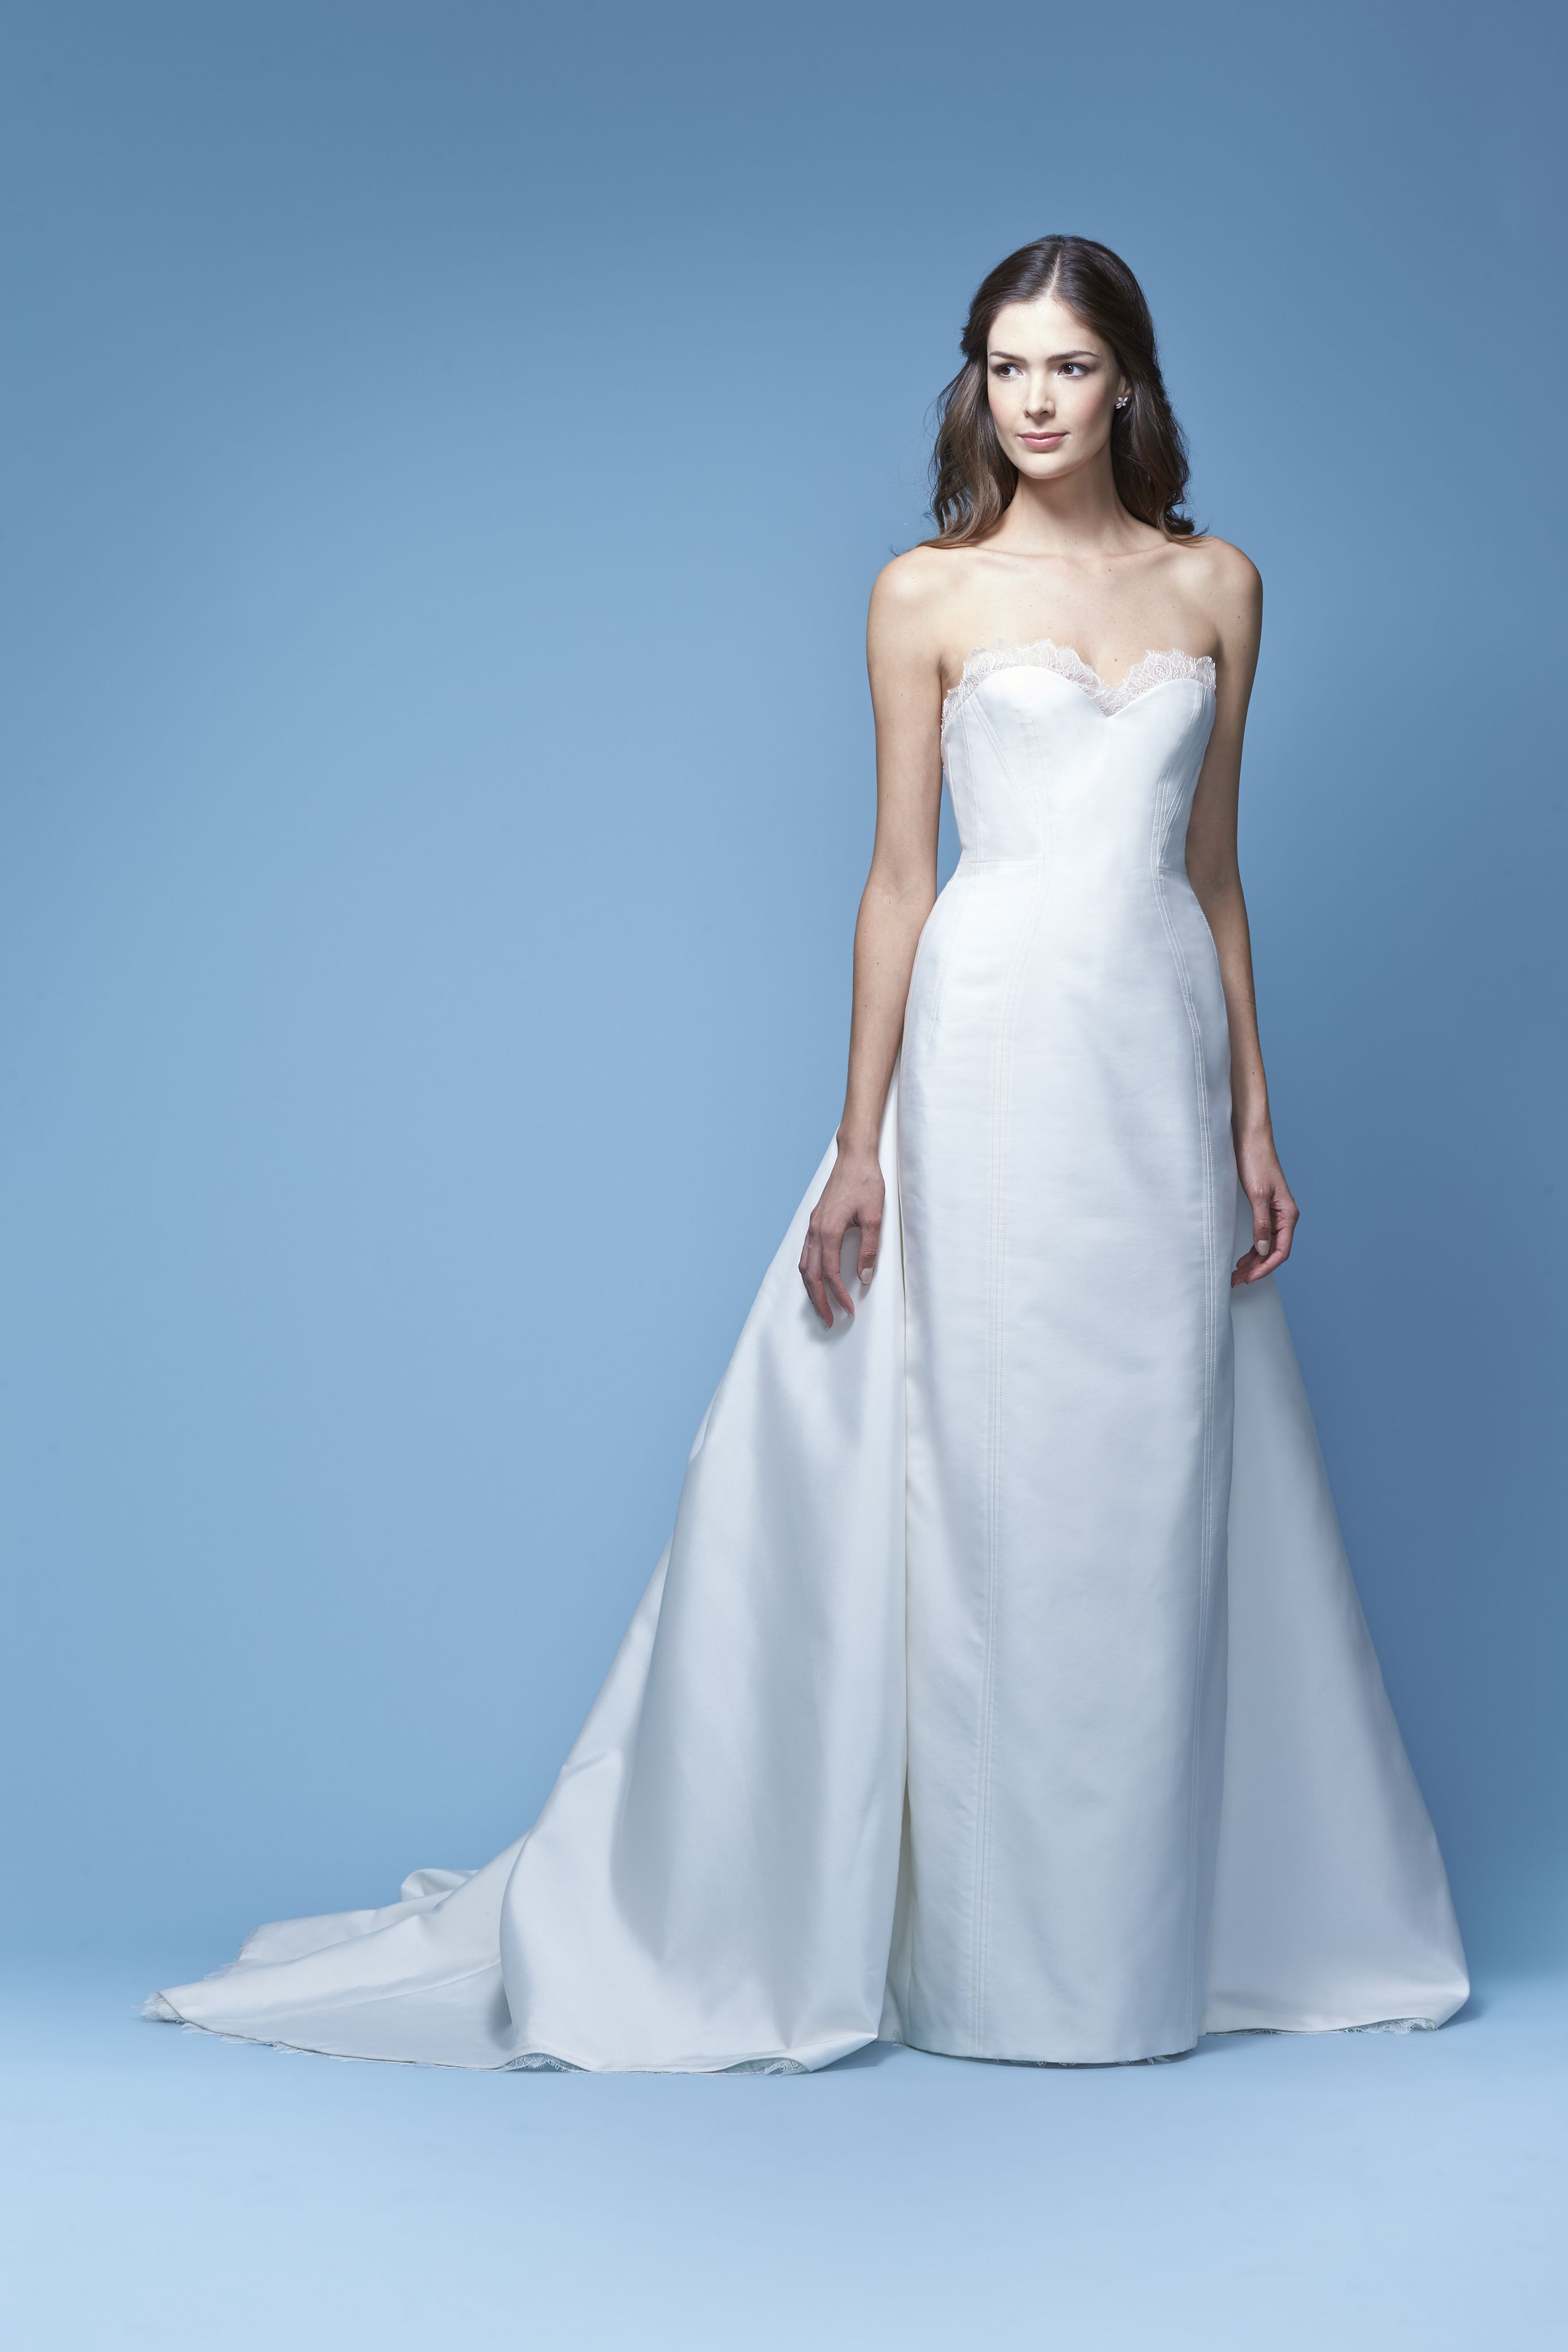 Elite wedding dresses  Carolina Herrera Bridal Spring